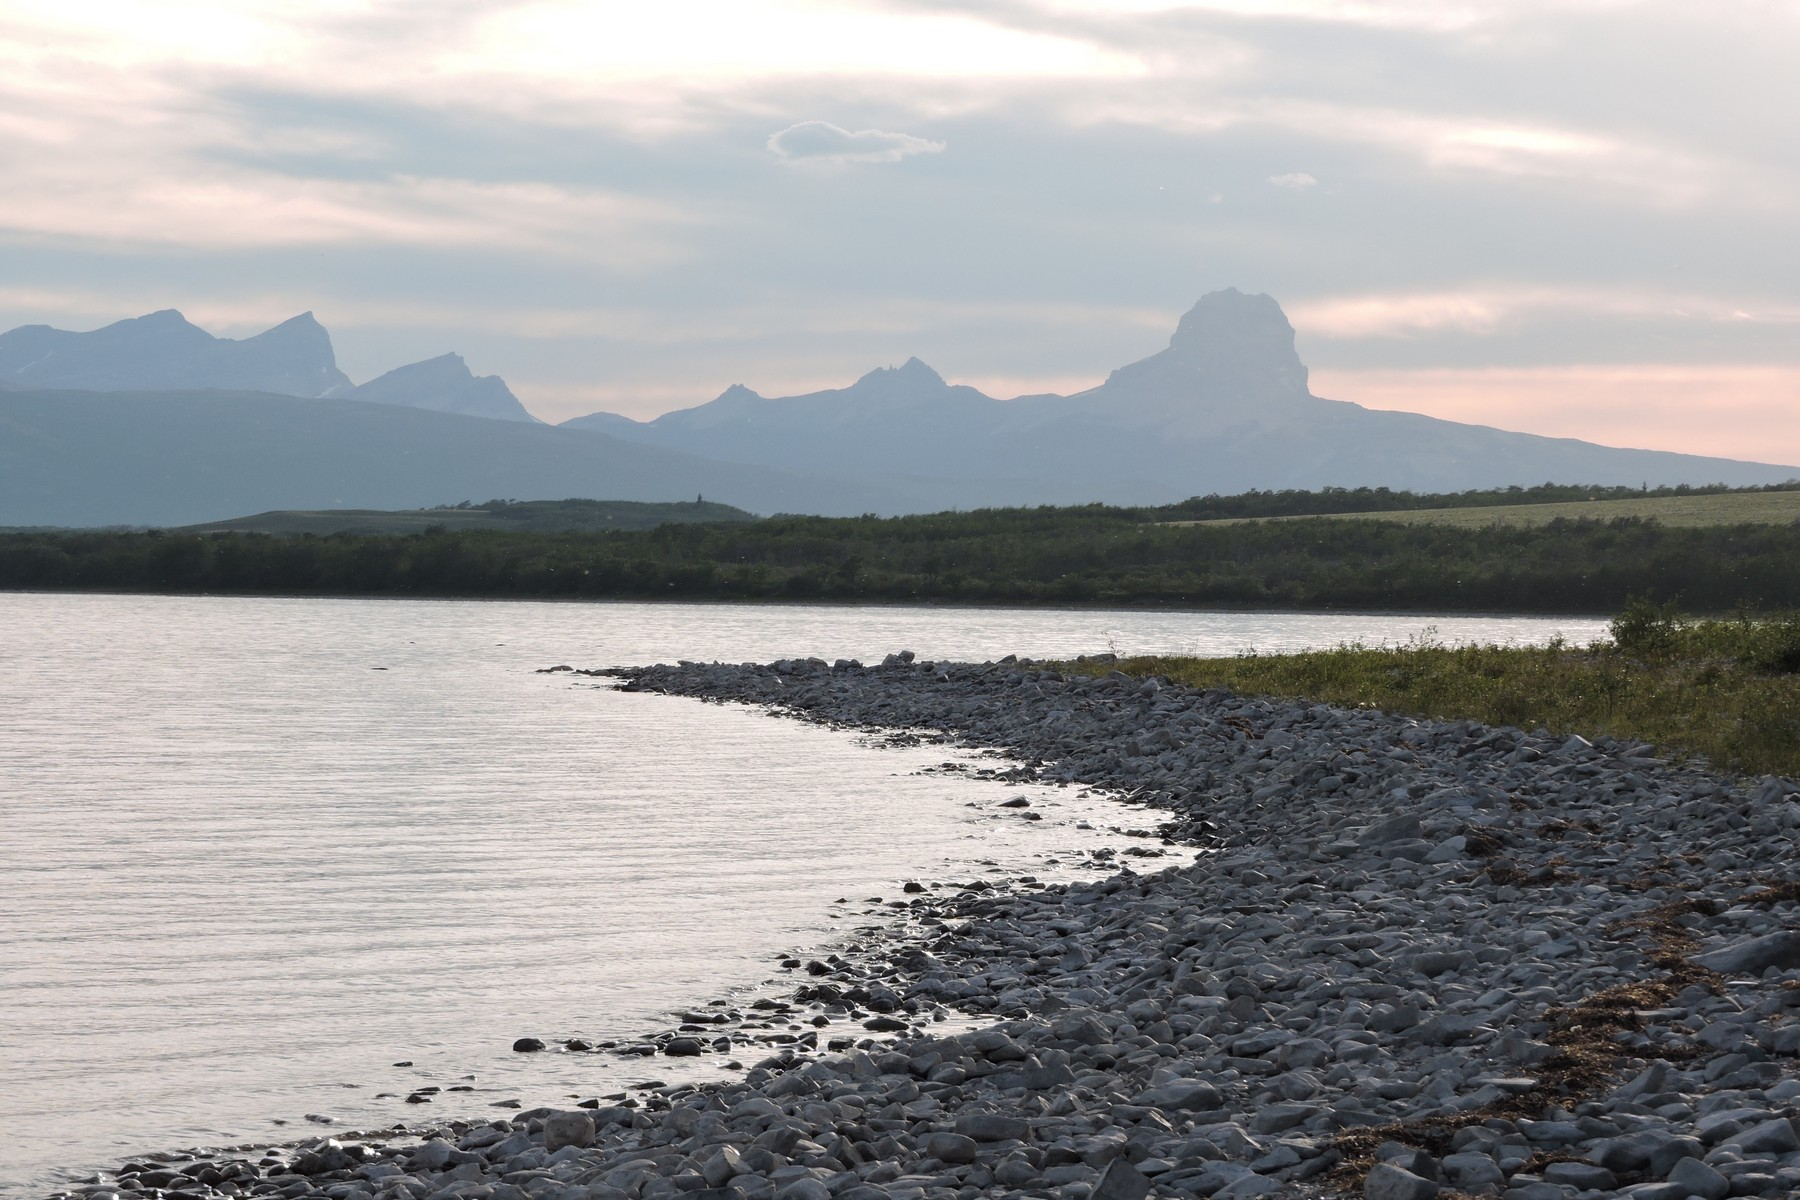 Land for Sale at 80 N Shore Duck Lake Rd , Babb, MT 59411 Other Areas, Montana 59411 United States